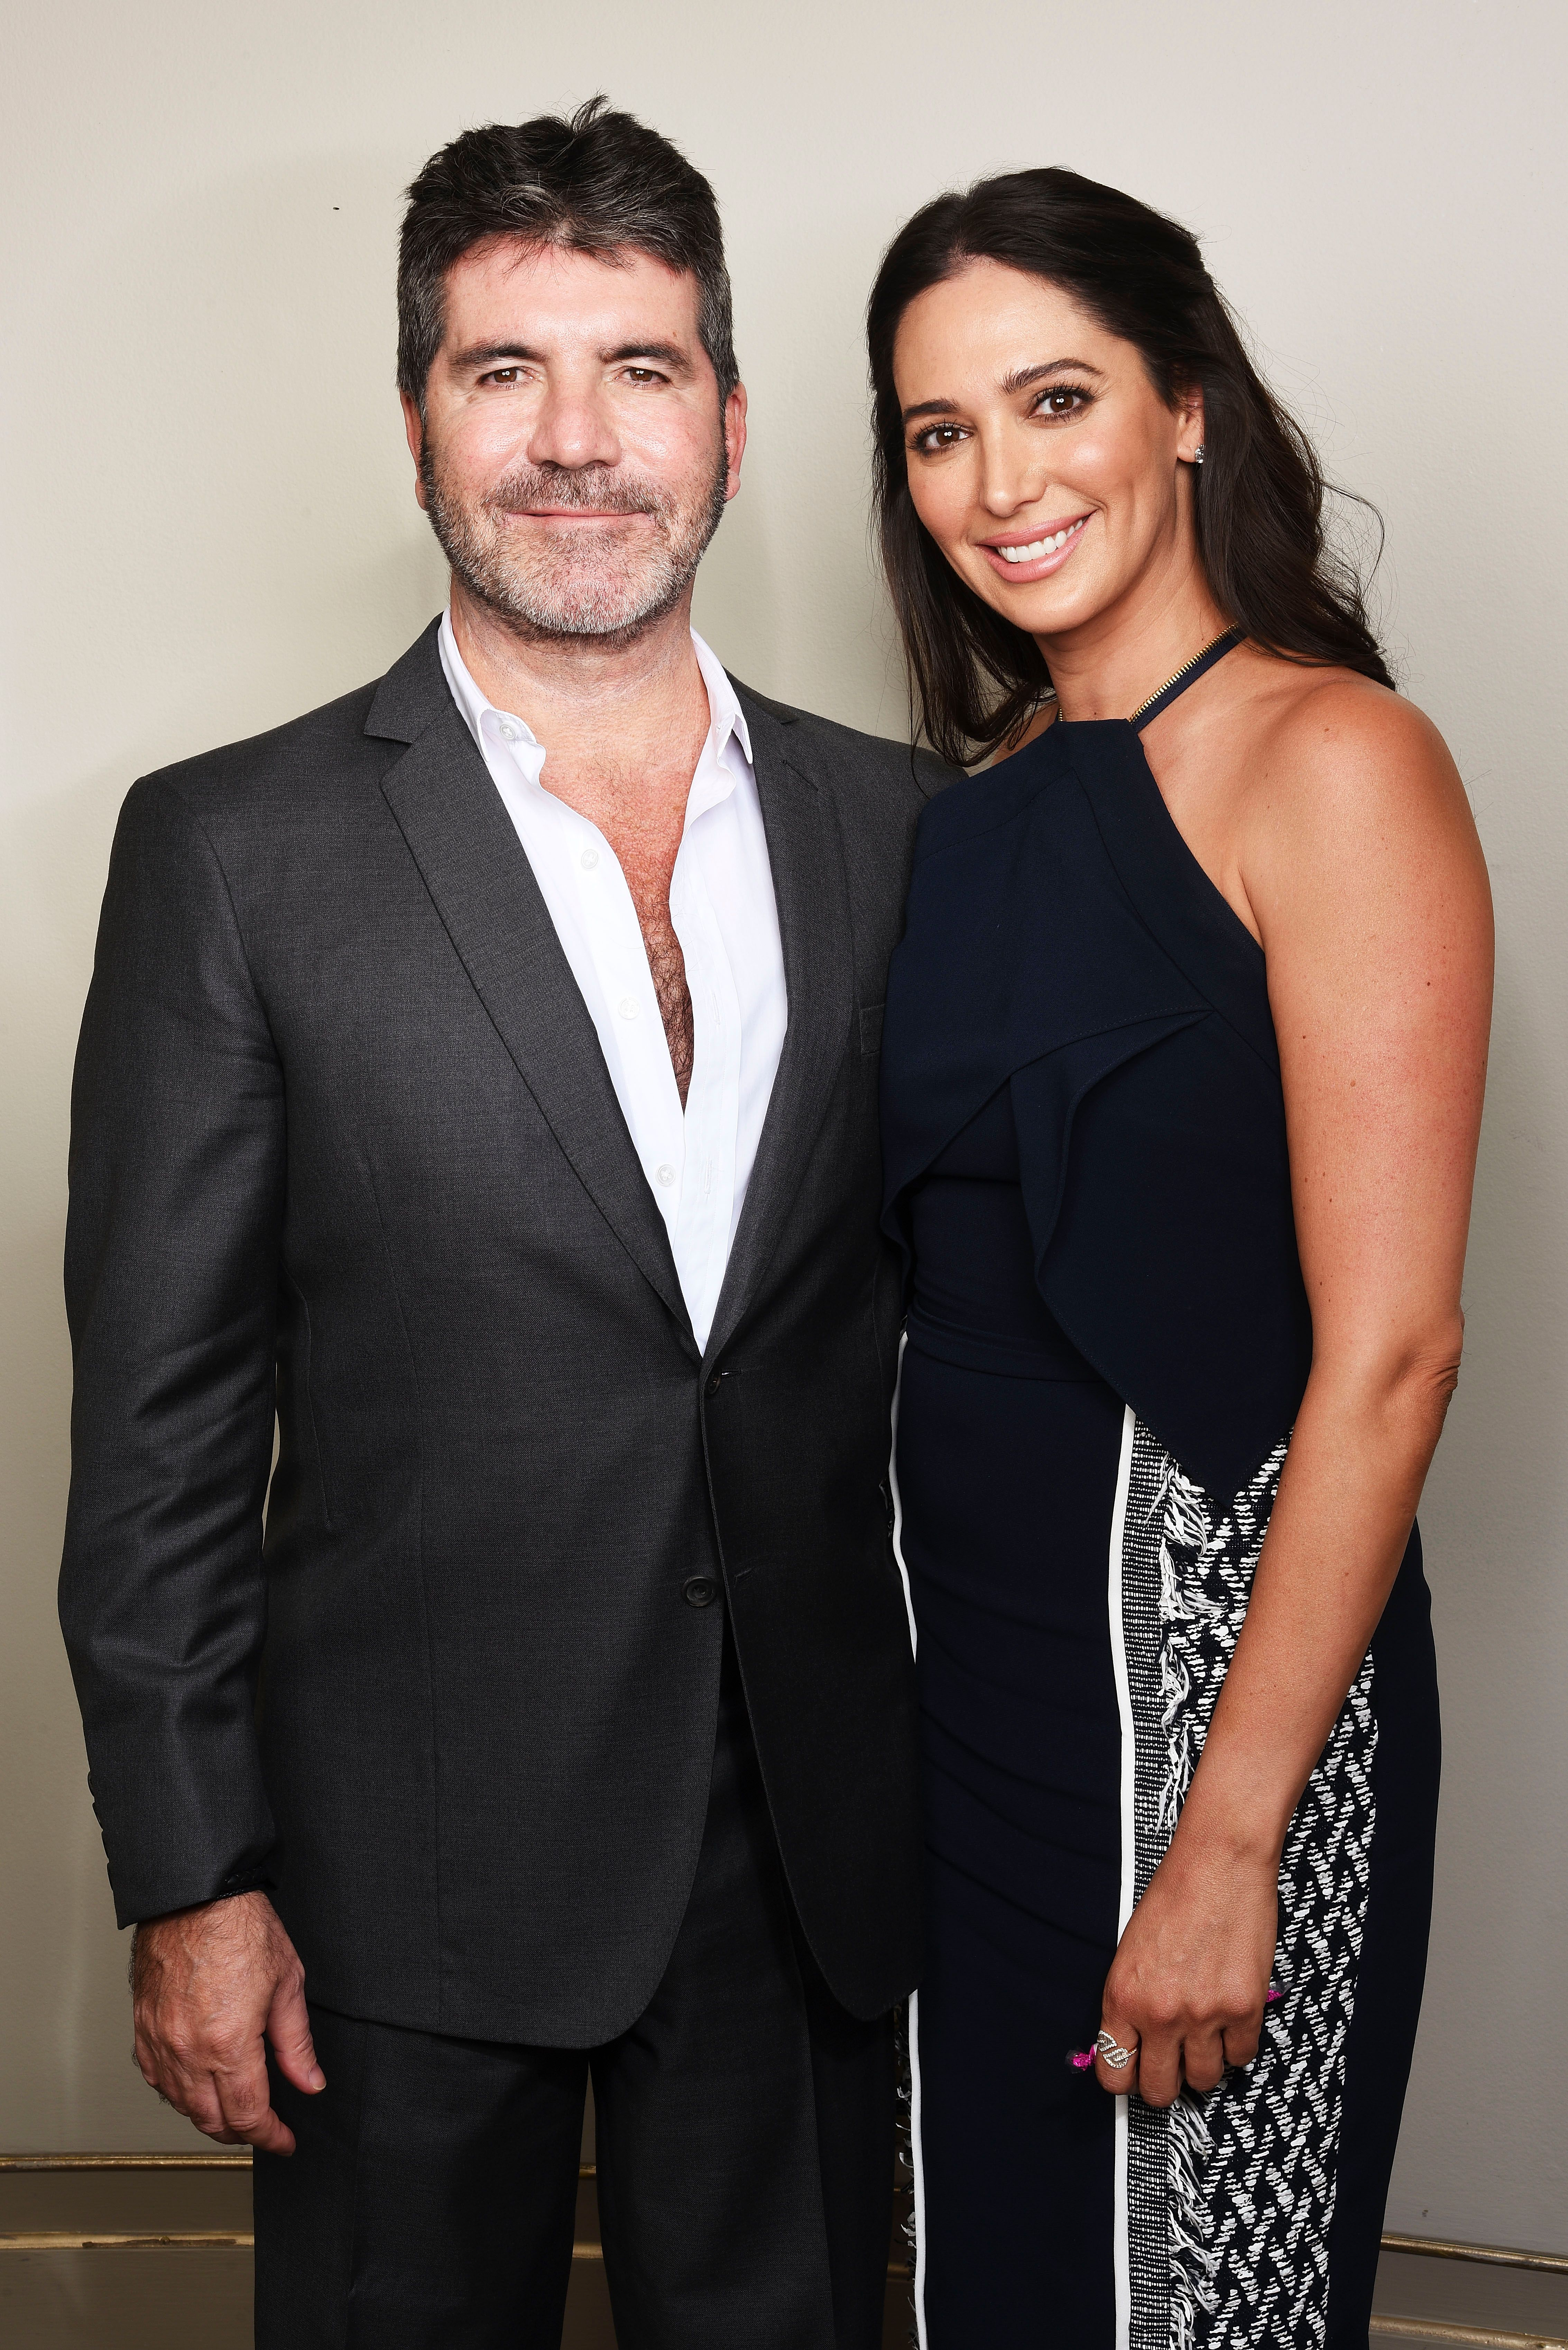 Simon Cowell and Lauren Silverman at a Shooting Star Chase Children's Hospice event on May 27, 2016, in London, England | Photo: Dave J Hogan/Getty Images